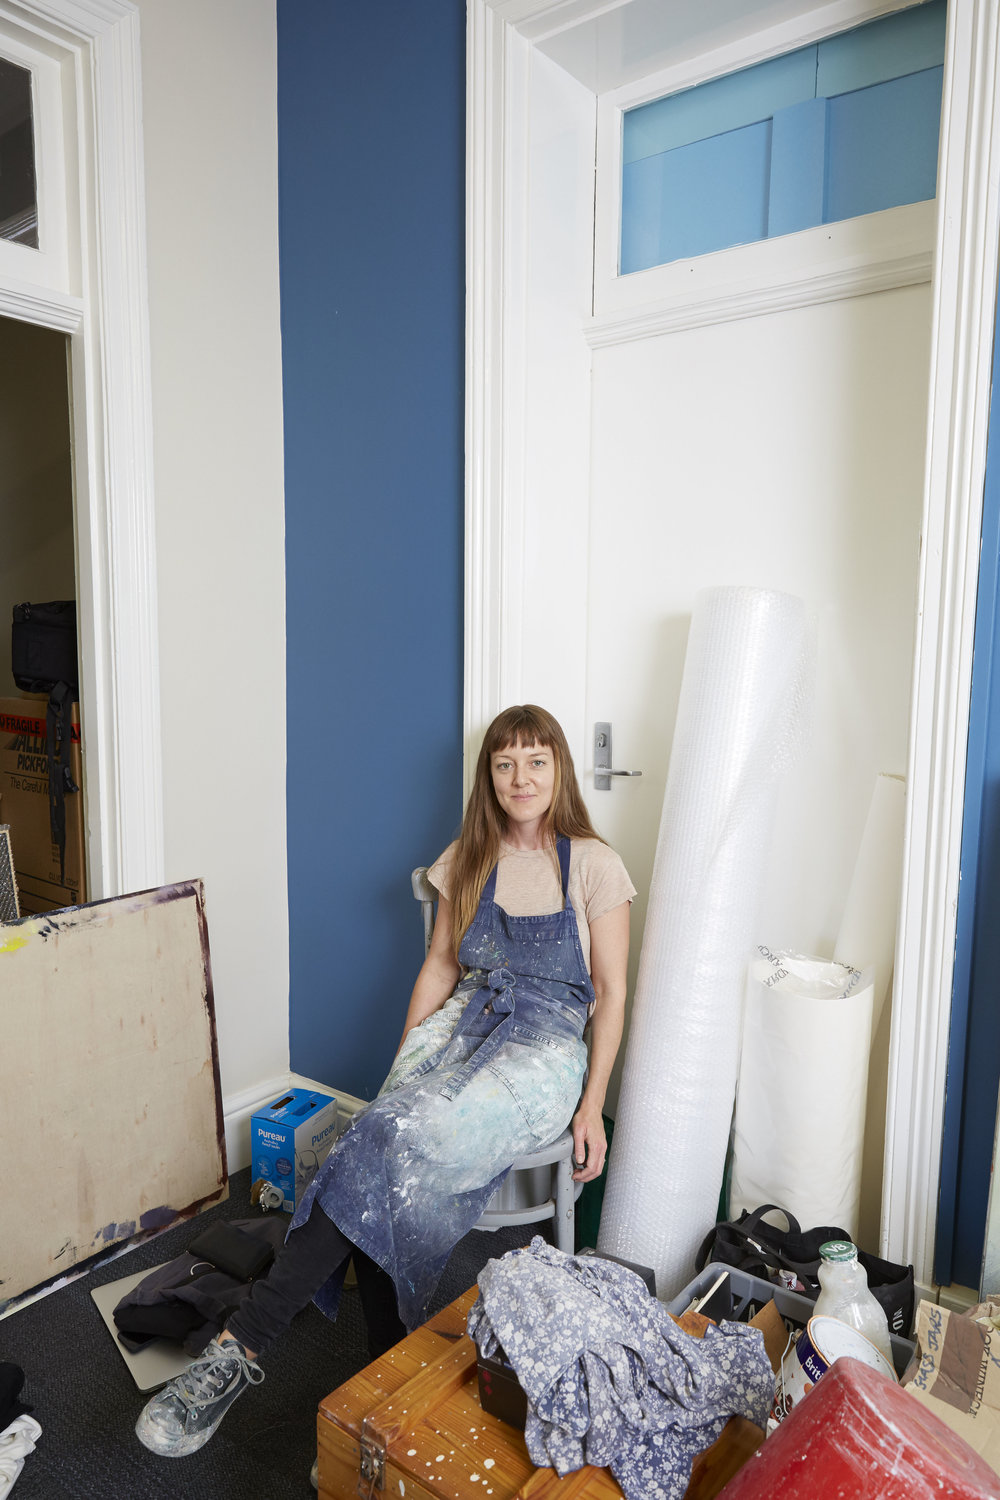 Studio Portrait 3 by Liz Looker.jpg